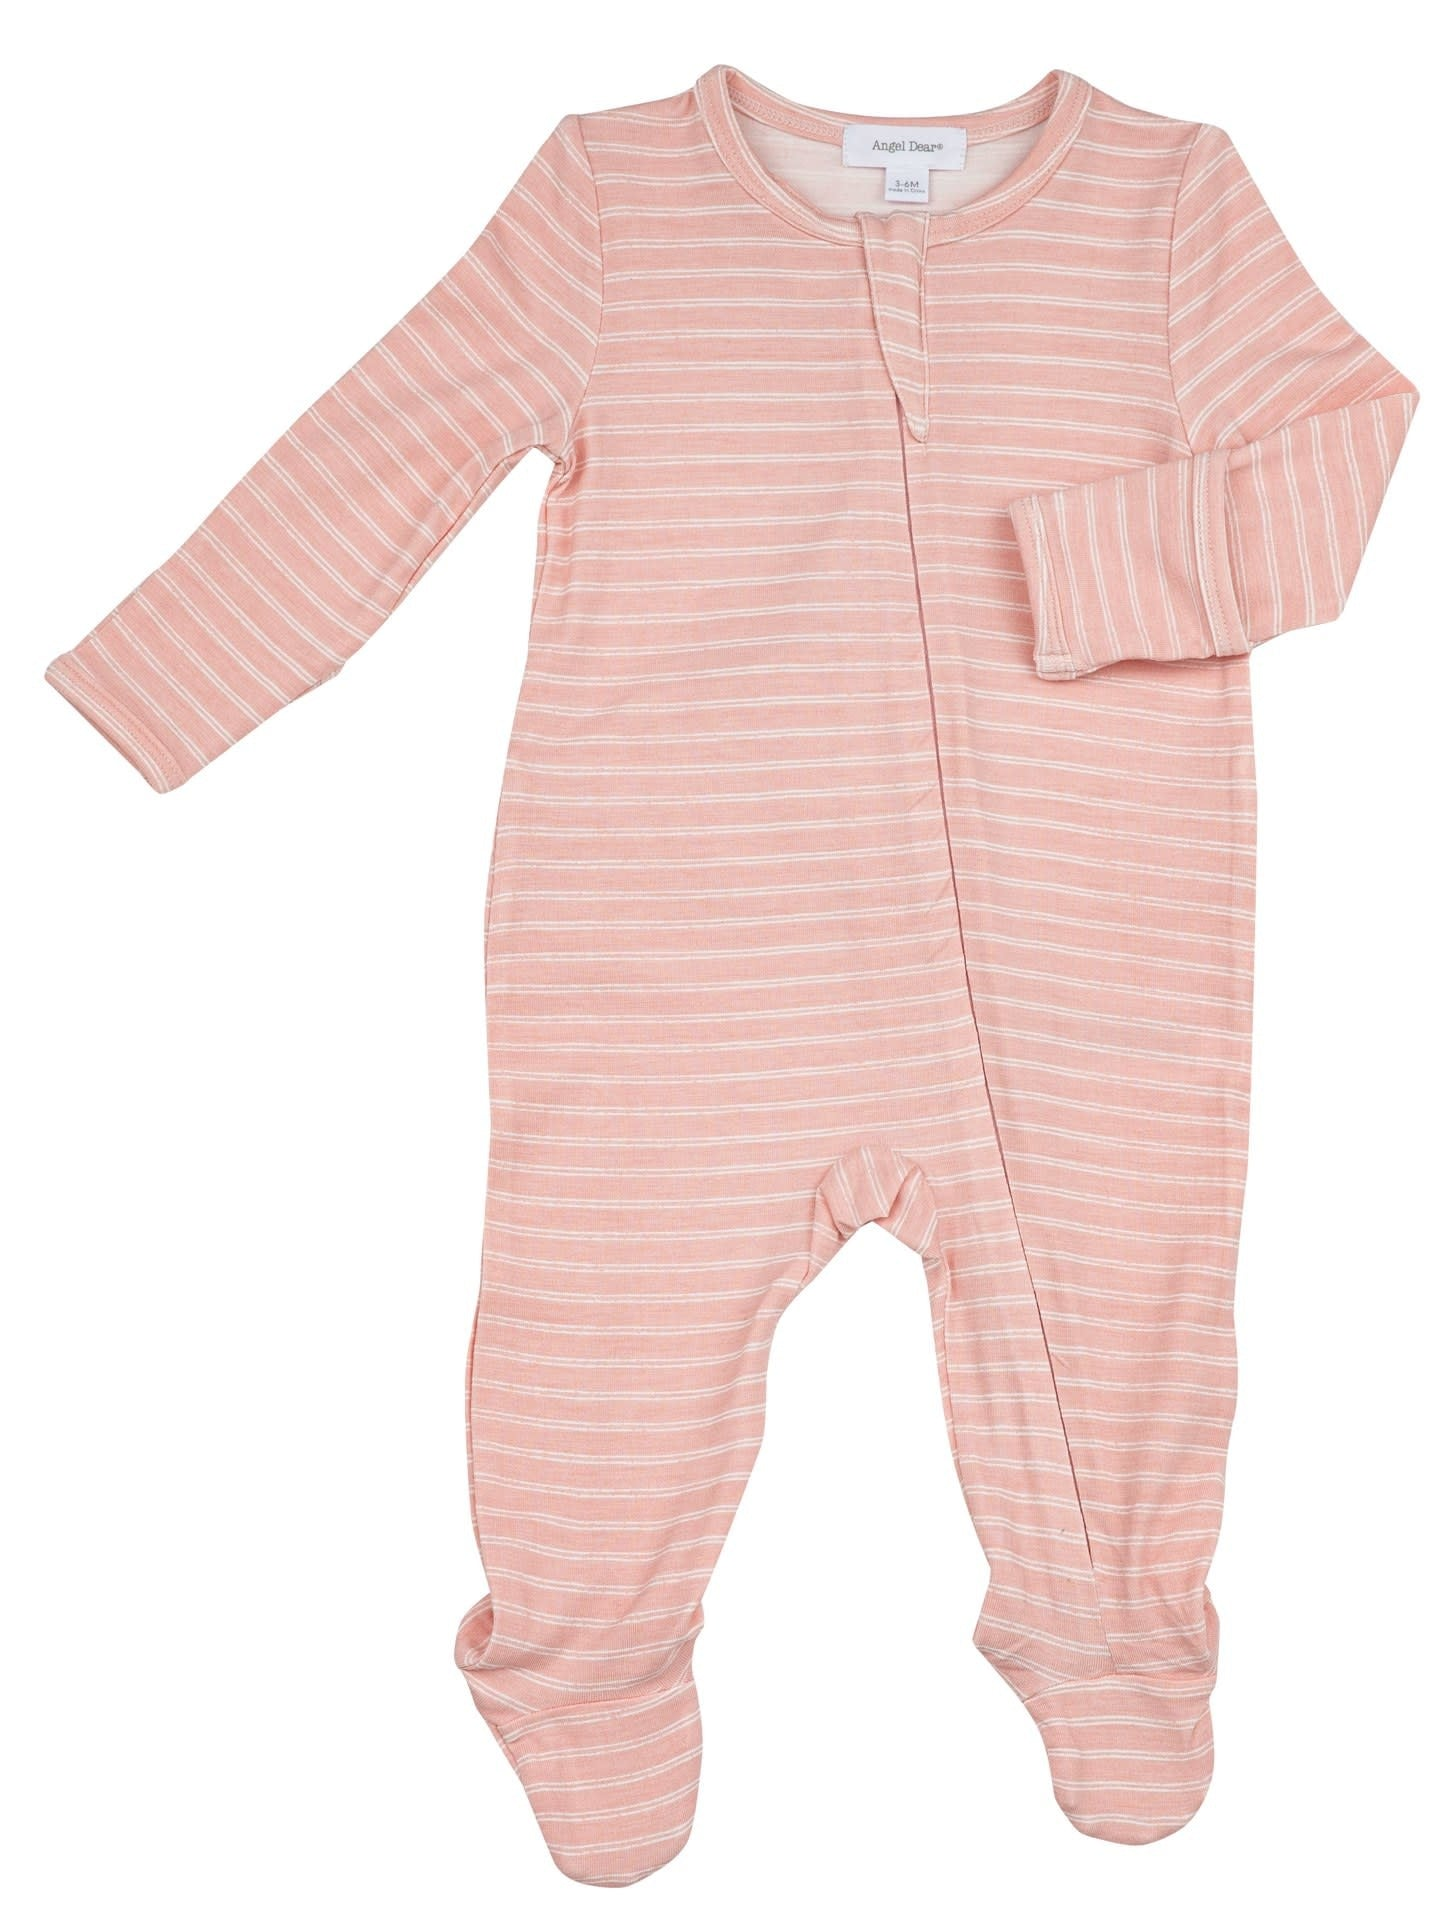 Angel Dear - Hippo Zipper Footie - Pink Stripe